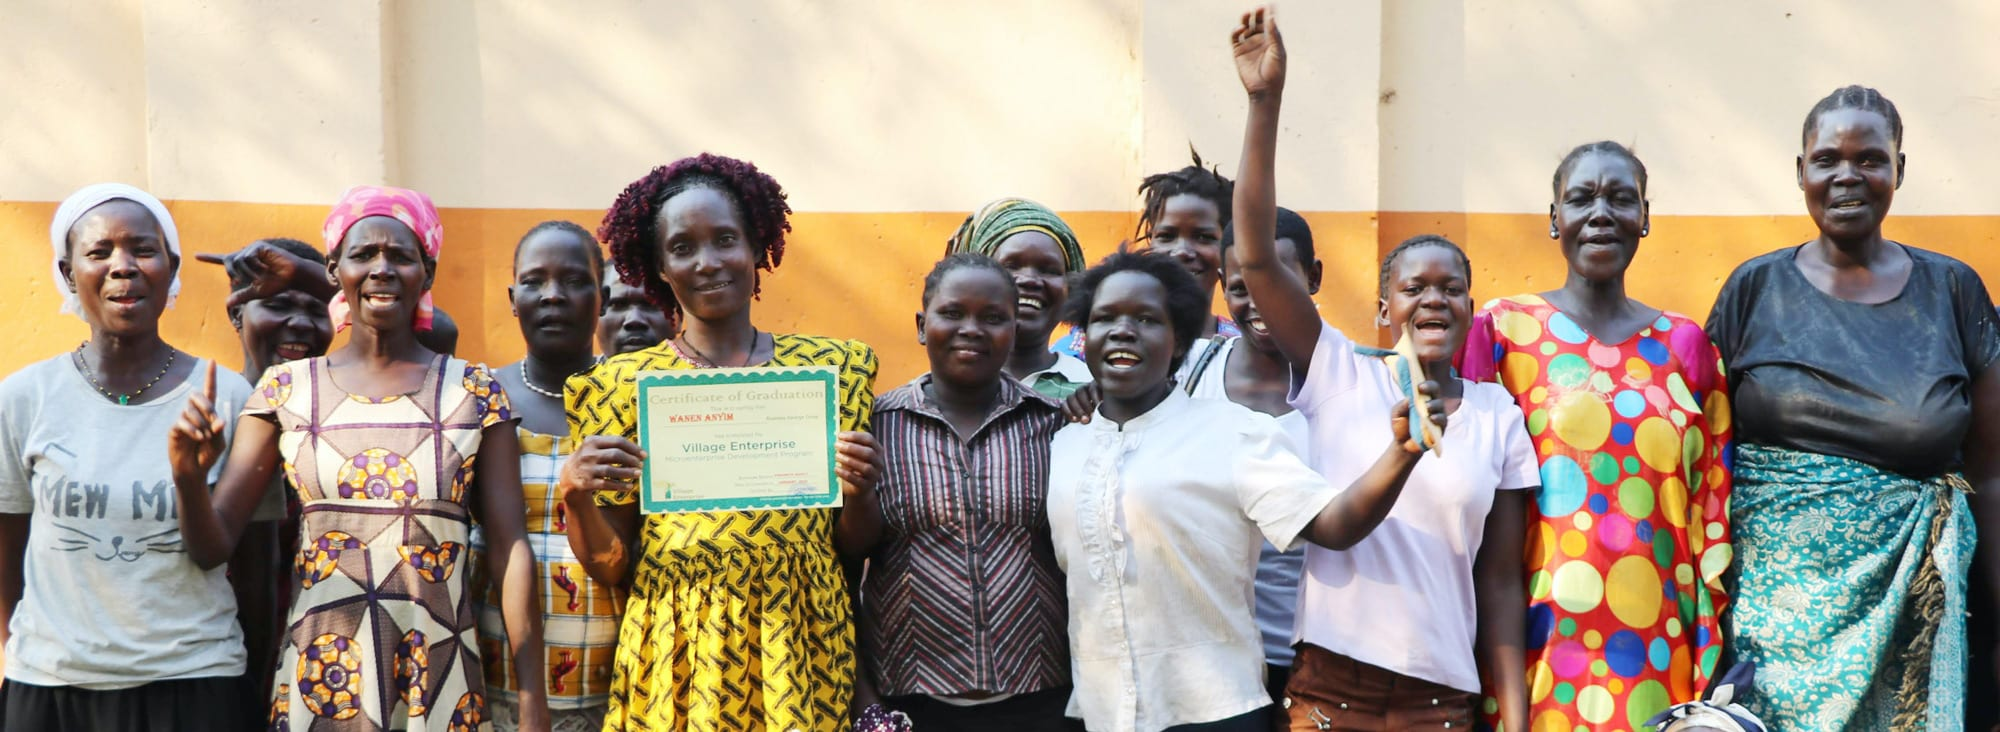 Group of women holding development program graduation certificate